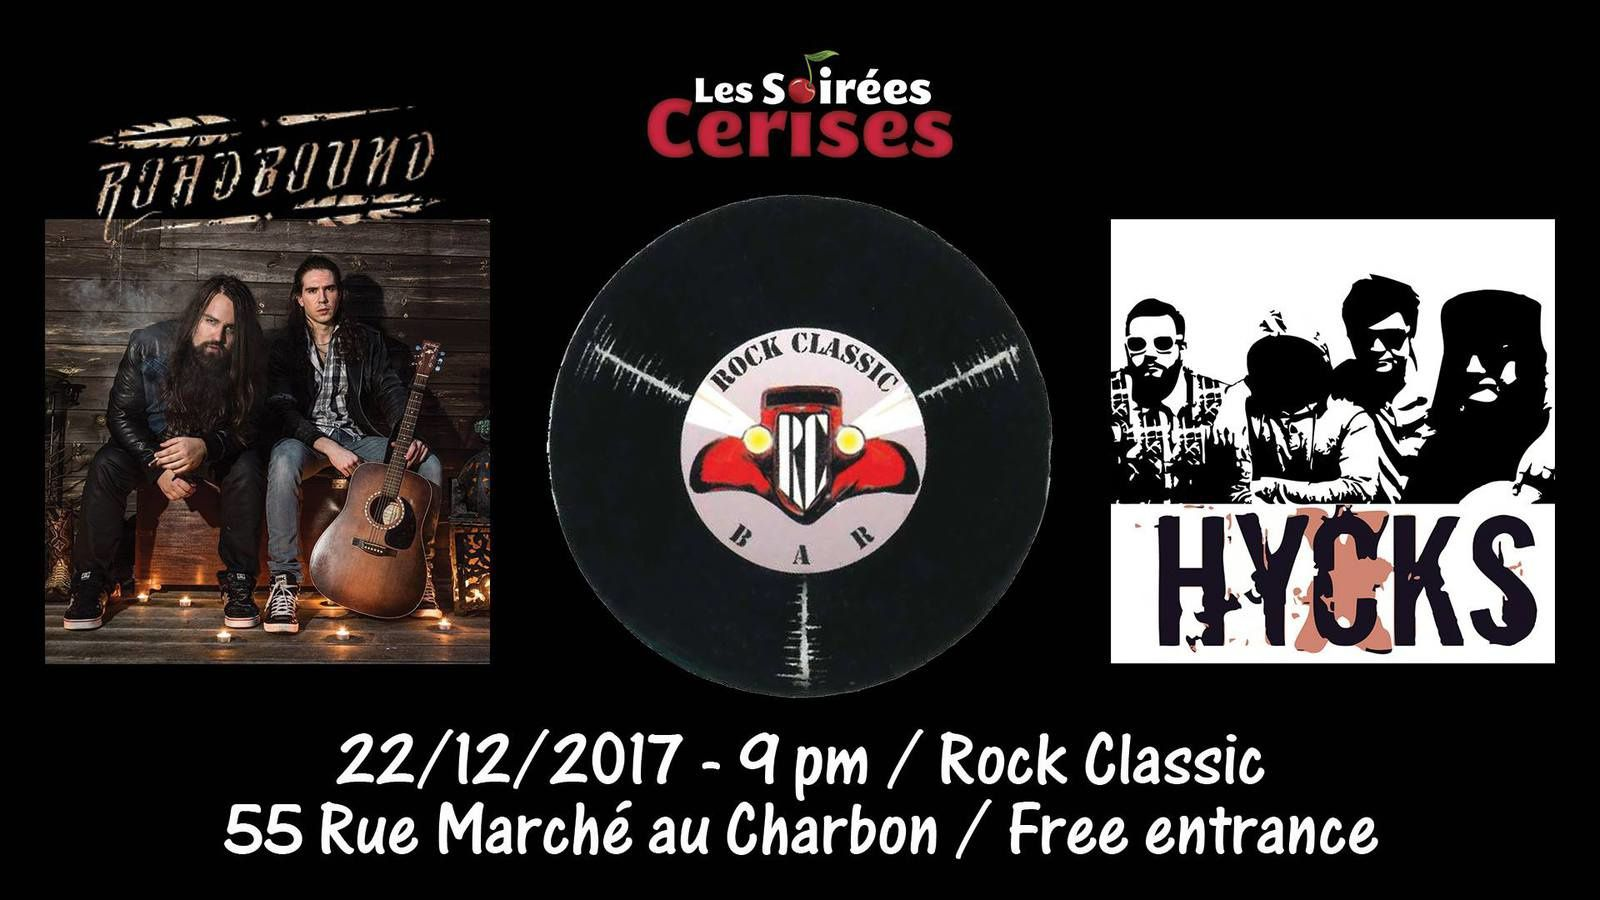 ▶ Roadbound + Hycks @ Rock Classic - 22/12/2017 - 21h00 - Entrée gratuite !